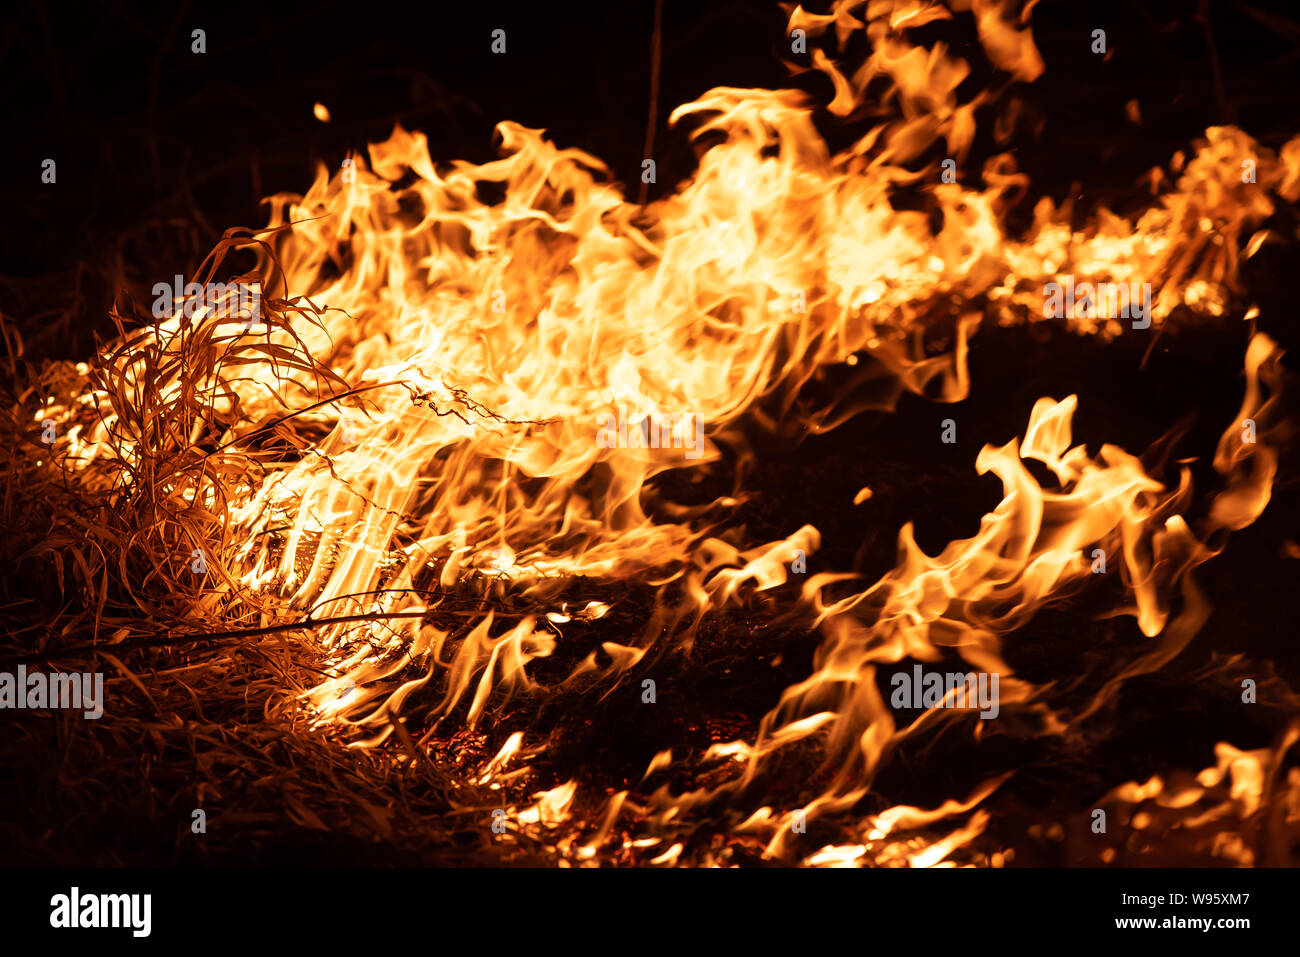 Burning grass in the field, close up. Nature on fire. Themes of fire, disaster and extreme events. Night shot. Stock Photo